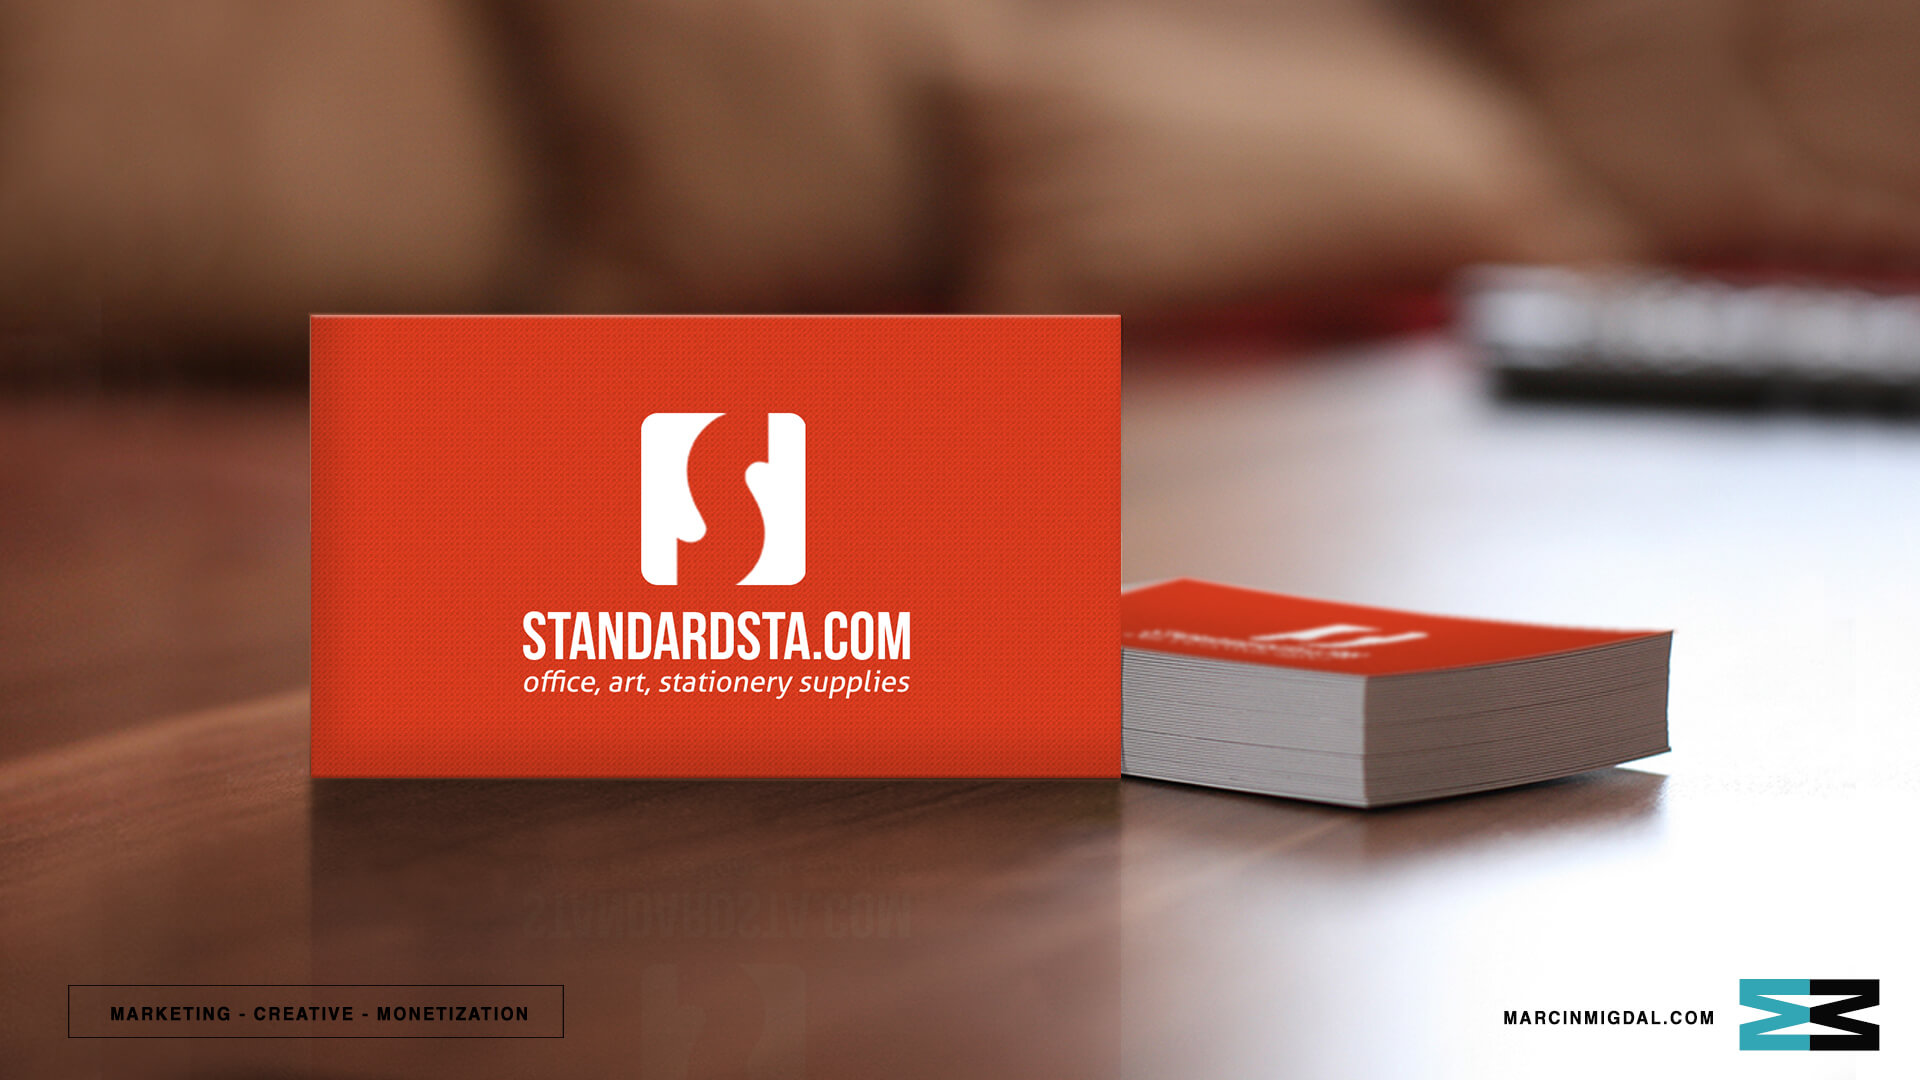 creative-director-marketing-director-marcin-migdal-custom-business-card-design-49corporate (1)